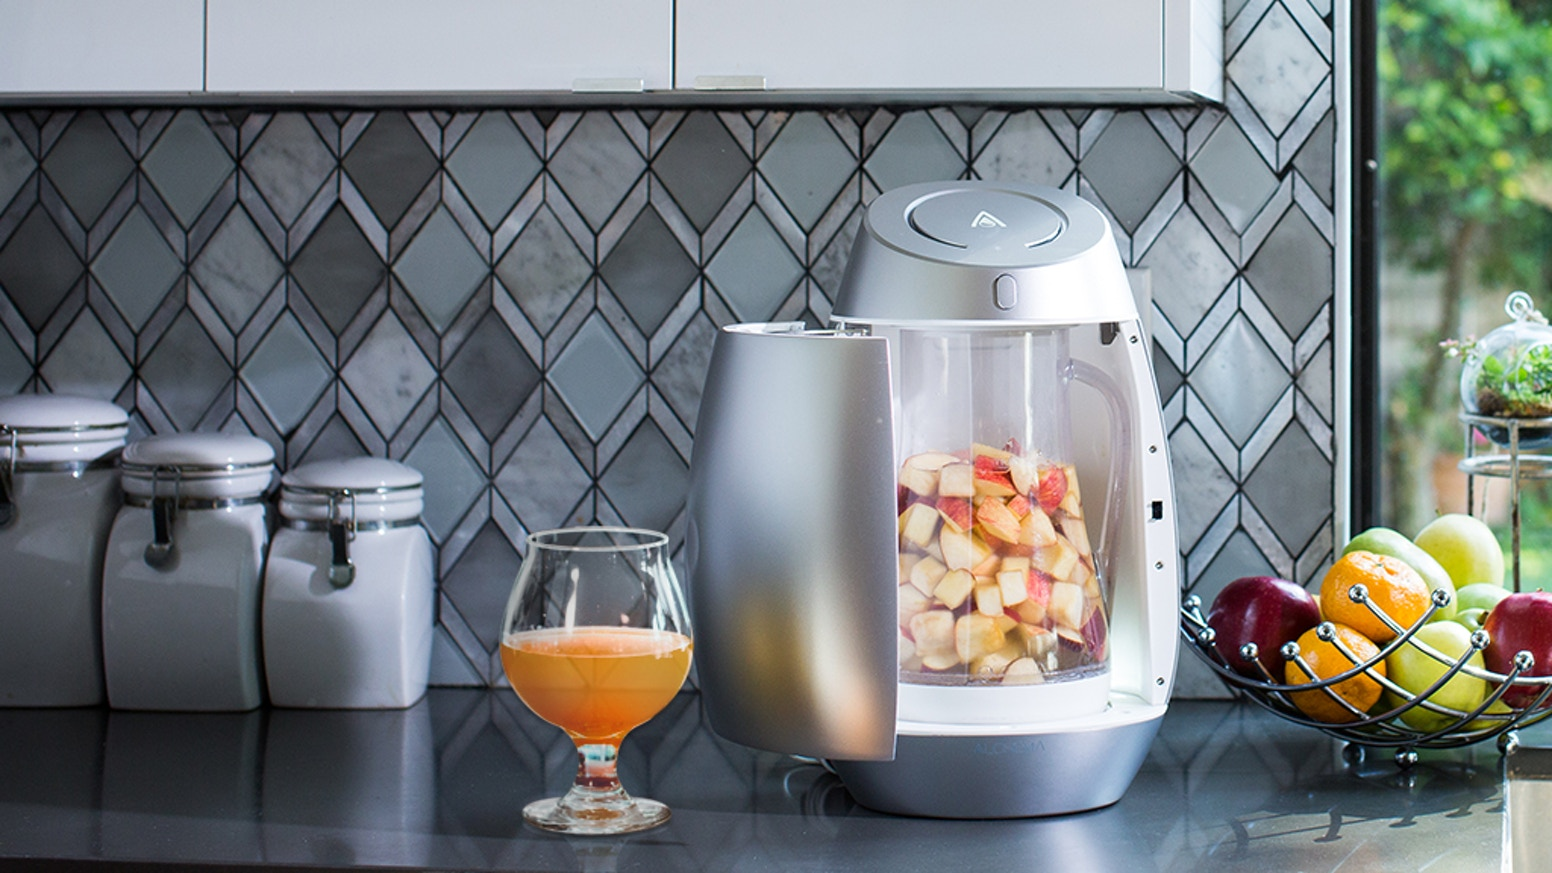 Make your own delicious craft cider at home from fresh fruit. Explore creative flavor combos with your friends and family.